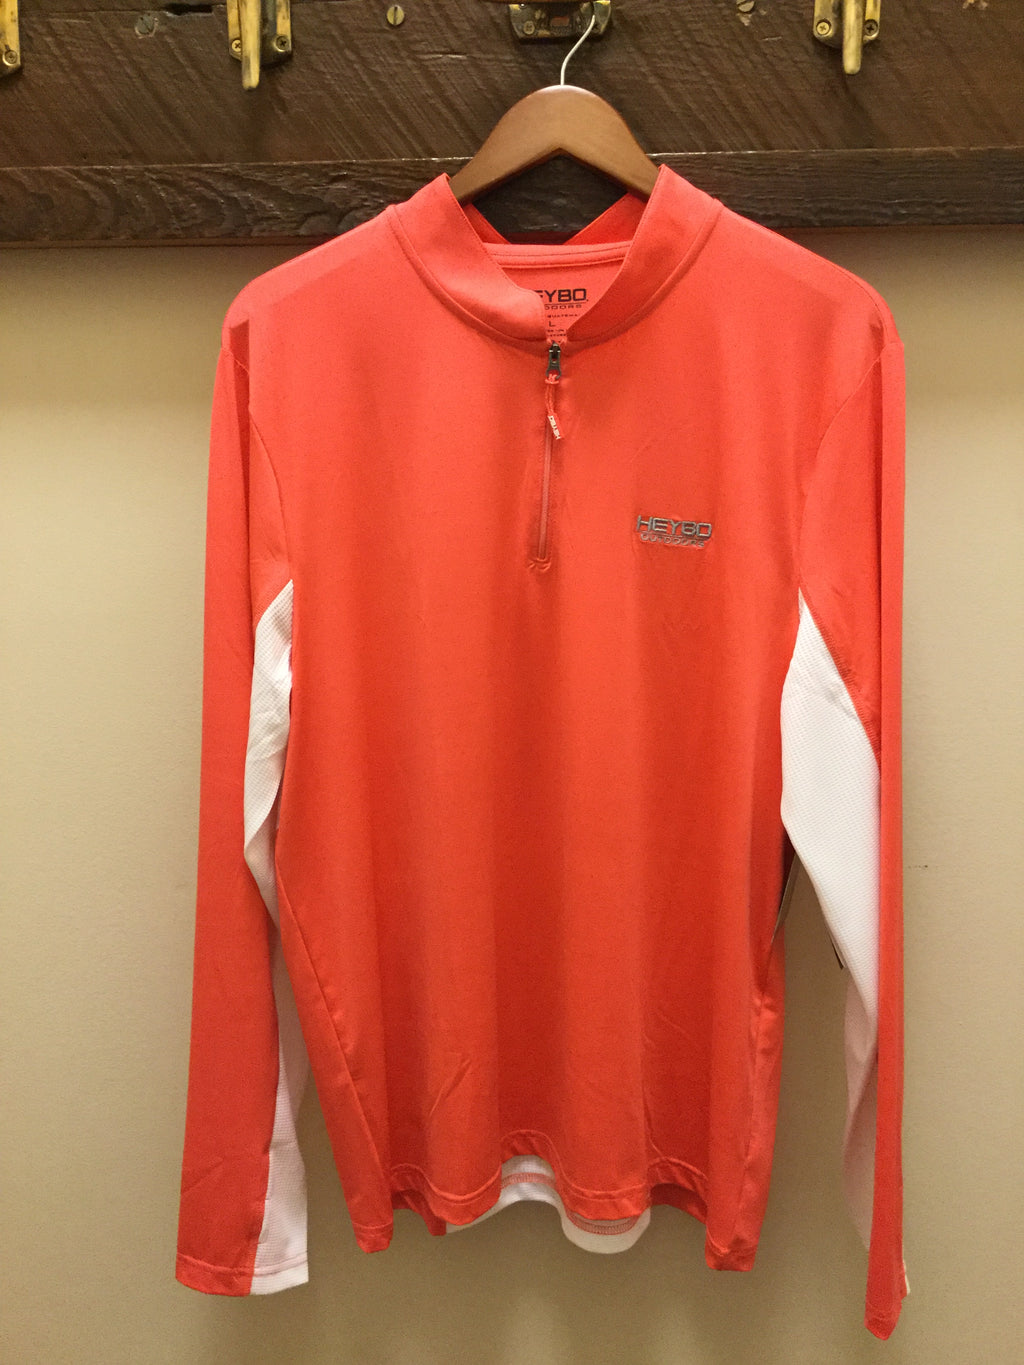 Heybo Wanderer Performance 1/4 Zip